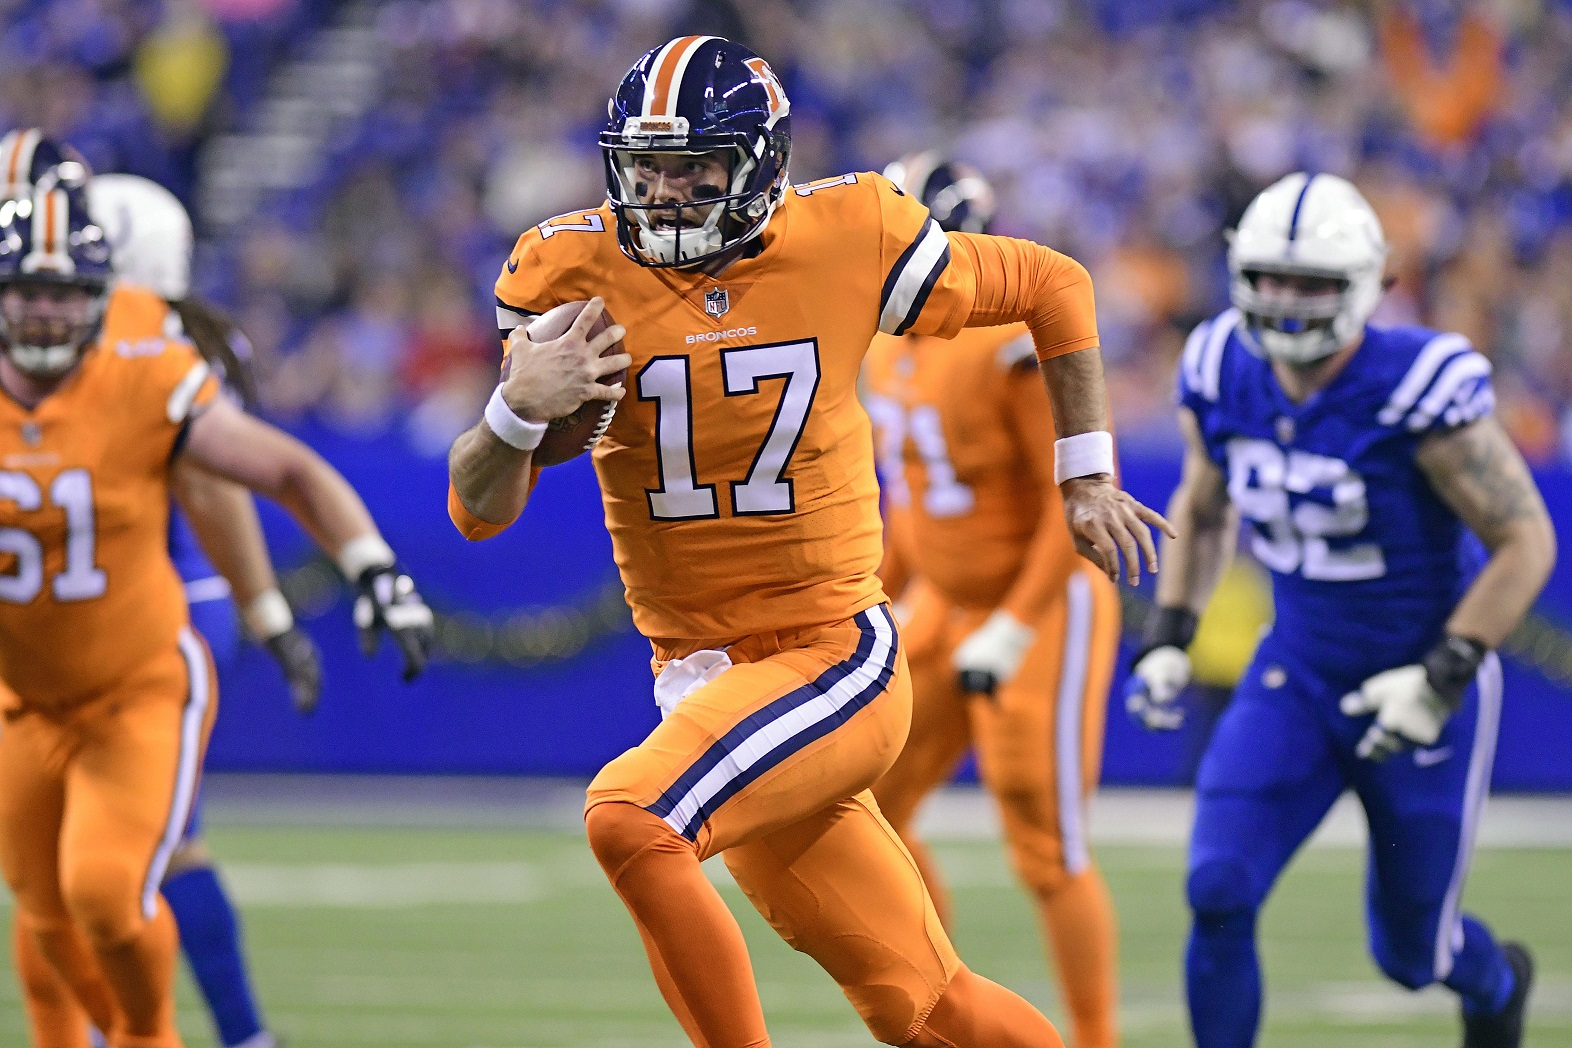 Broncos QB Trevor Siemian injures left shoulder during game